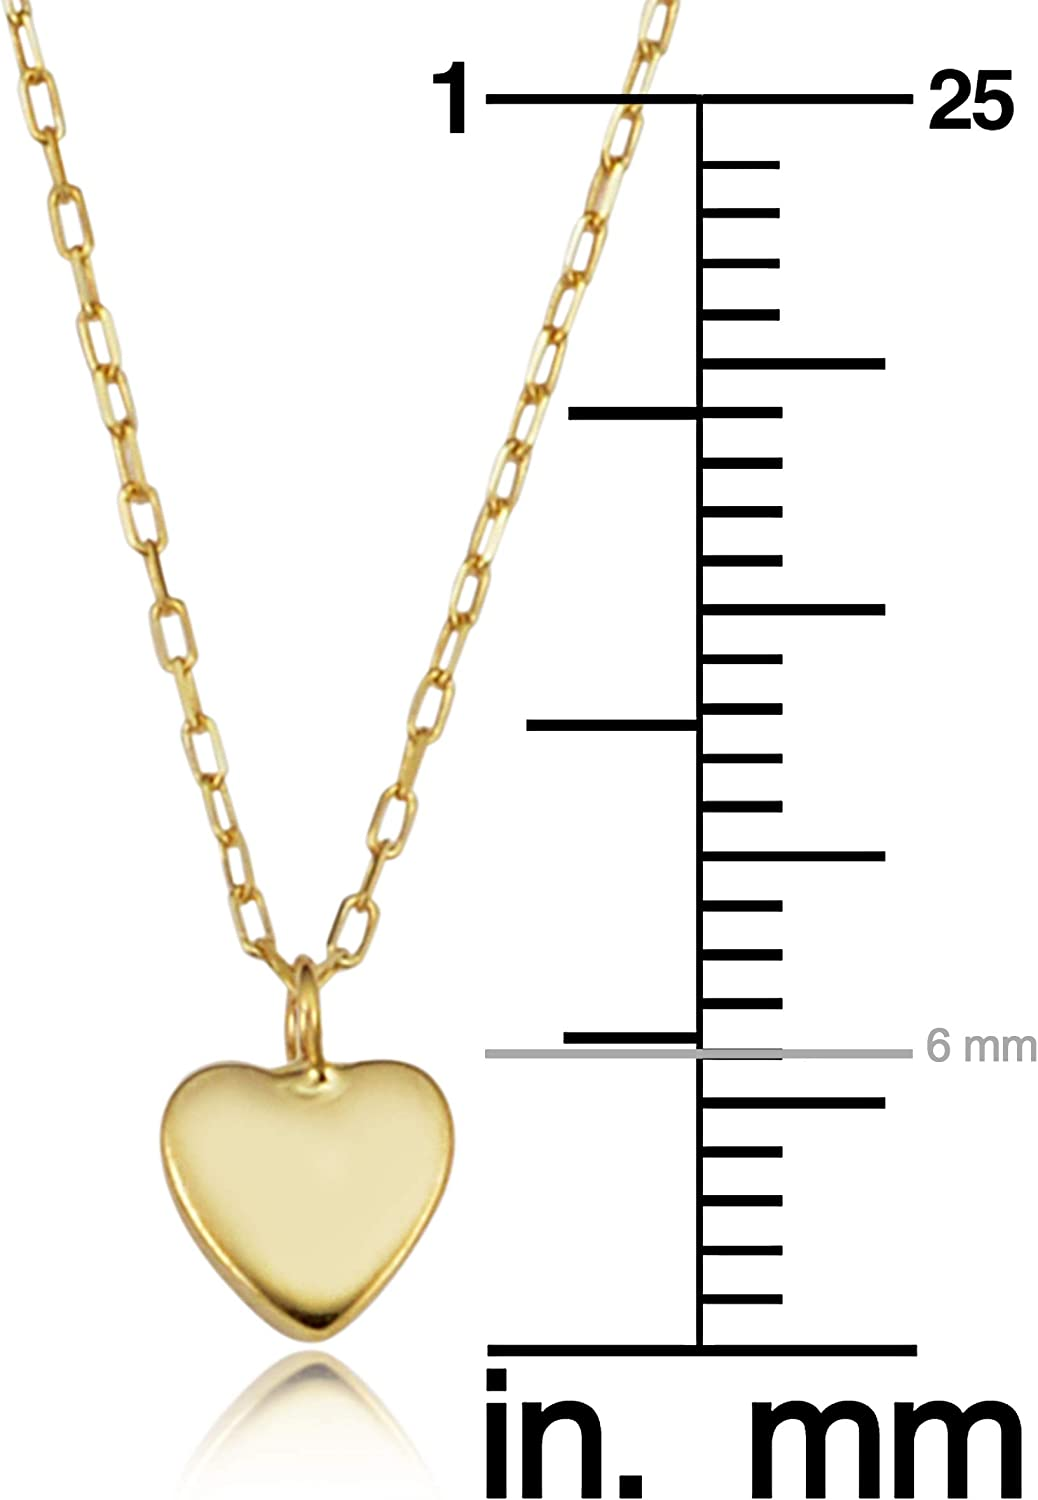 KoolJewelry 14k Yellow Gold Heart Layered Necklace for Women (adjusts to 17 or 18 inch)